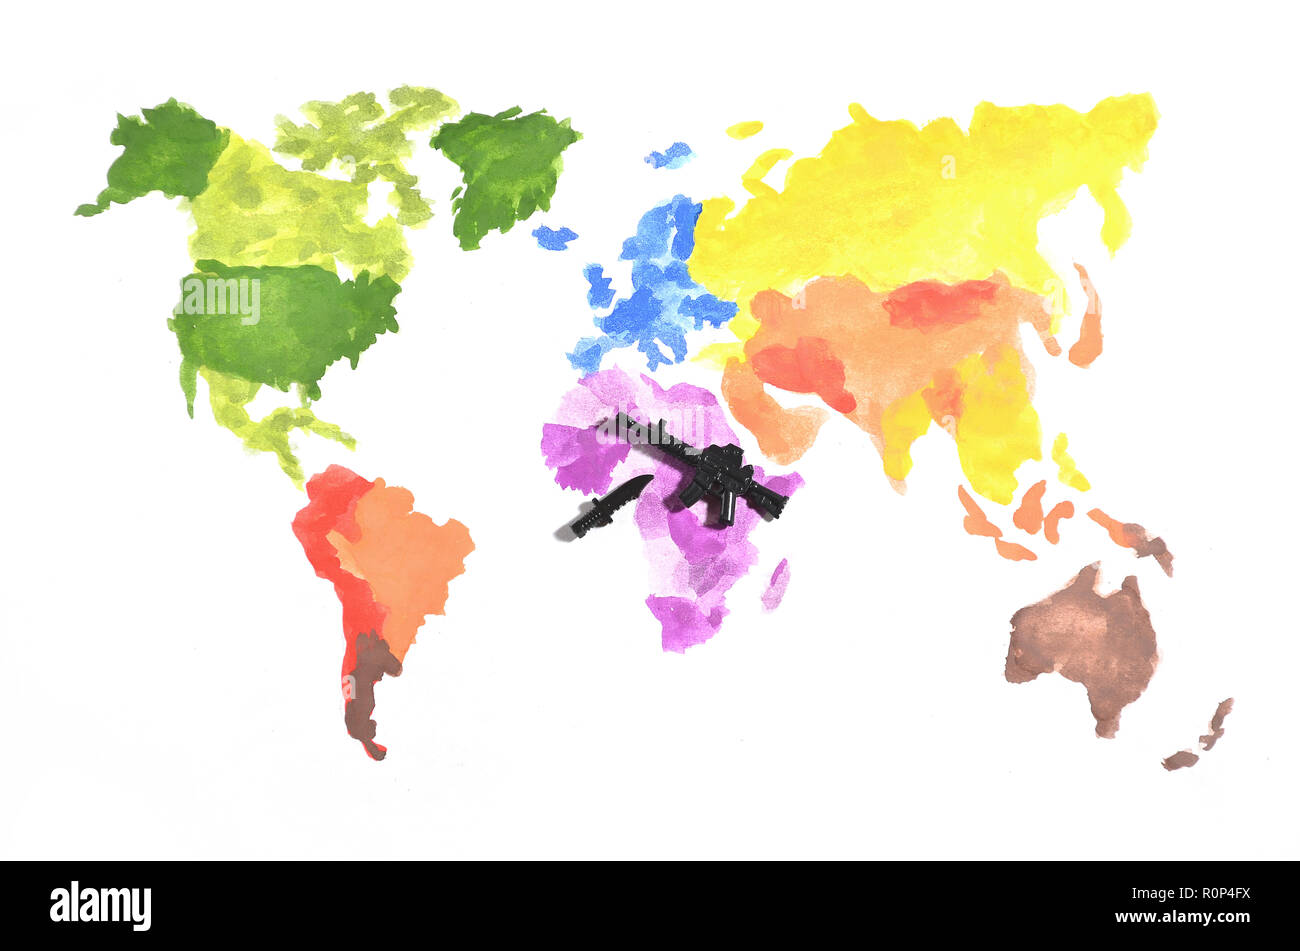 The world map is made with colored watercolor paints on white paper with the participation of a black toy gun and a knife. The concept of military ope - Stock Image